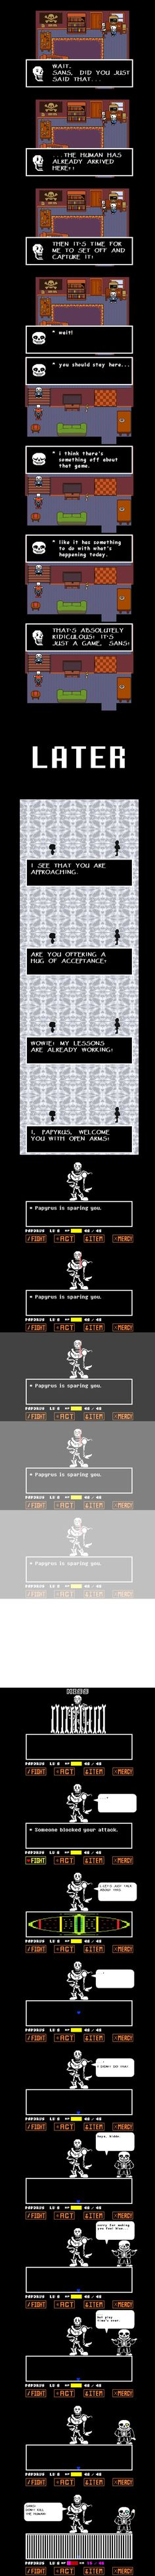 Undertale: Papyrus does Genocide Route Part 2 by HTF-ADTI-MLP100606 on DeviantArt